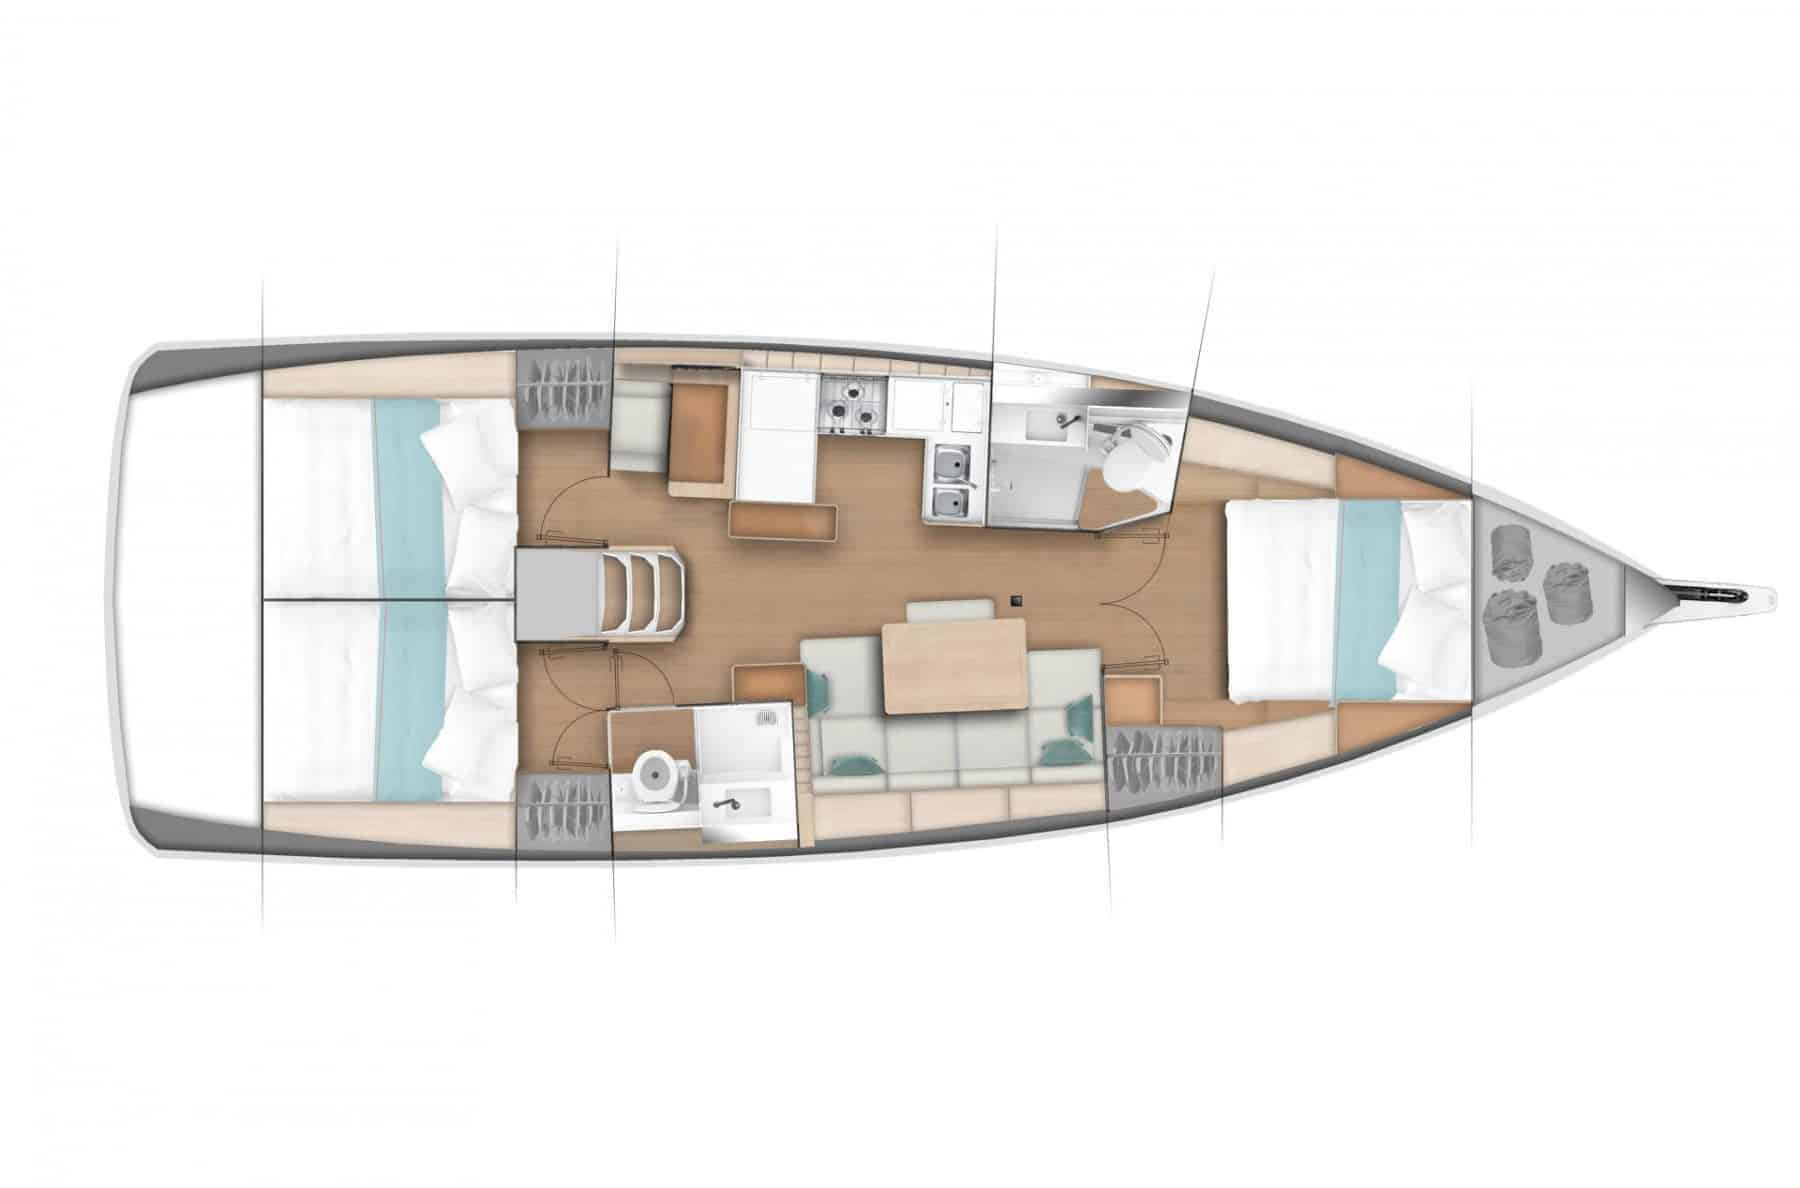 Overview of one of many hull options of the great Jeanneau Sun Odyssey 440